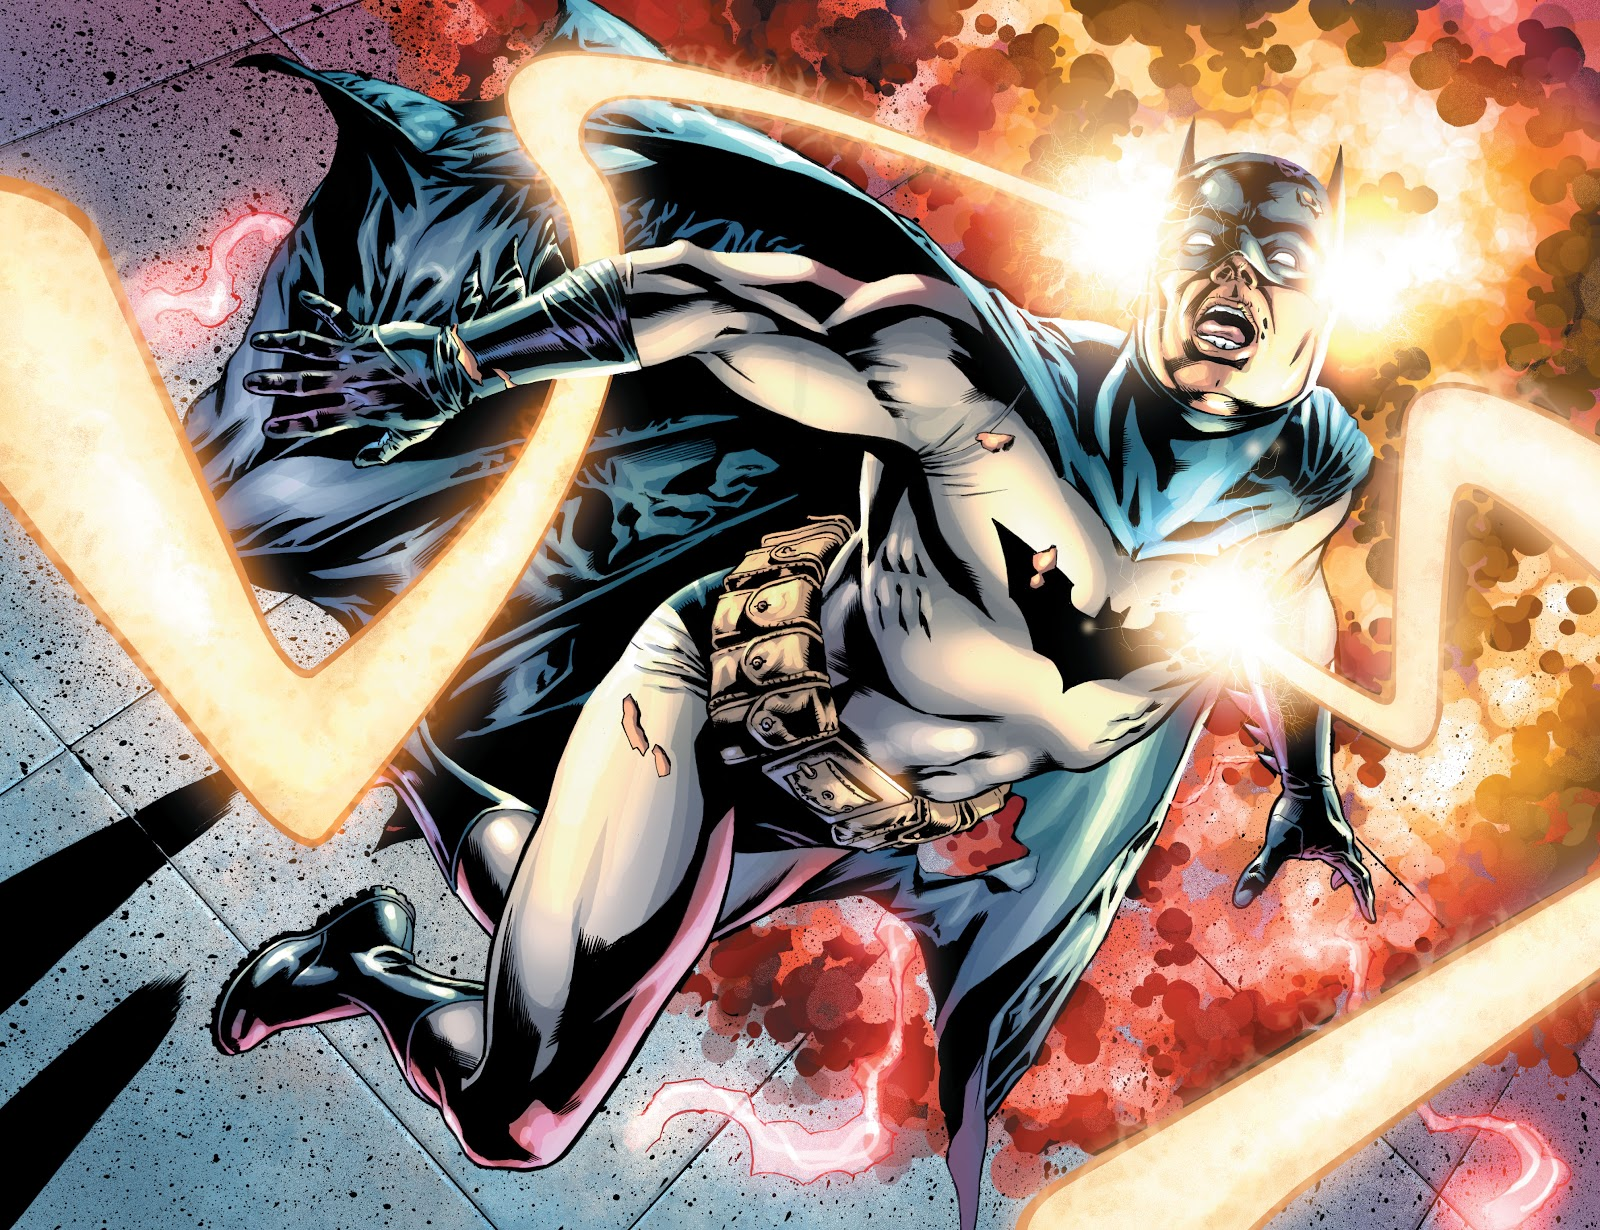 In 'Final Crisis' (2009) #6, the Omega sanction hits Batman at the head and the torso, sending him through time.